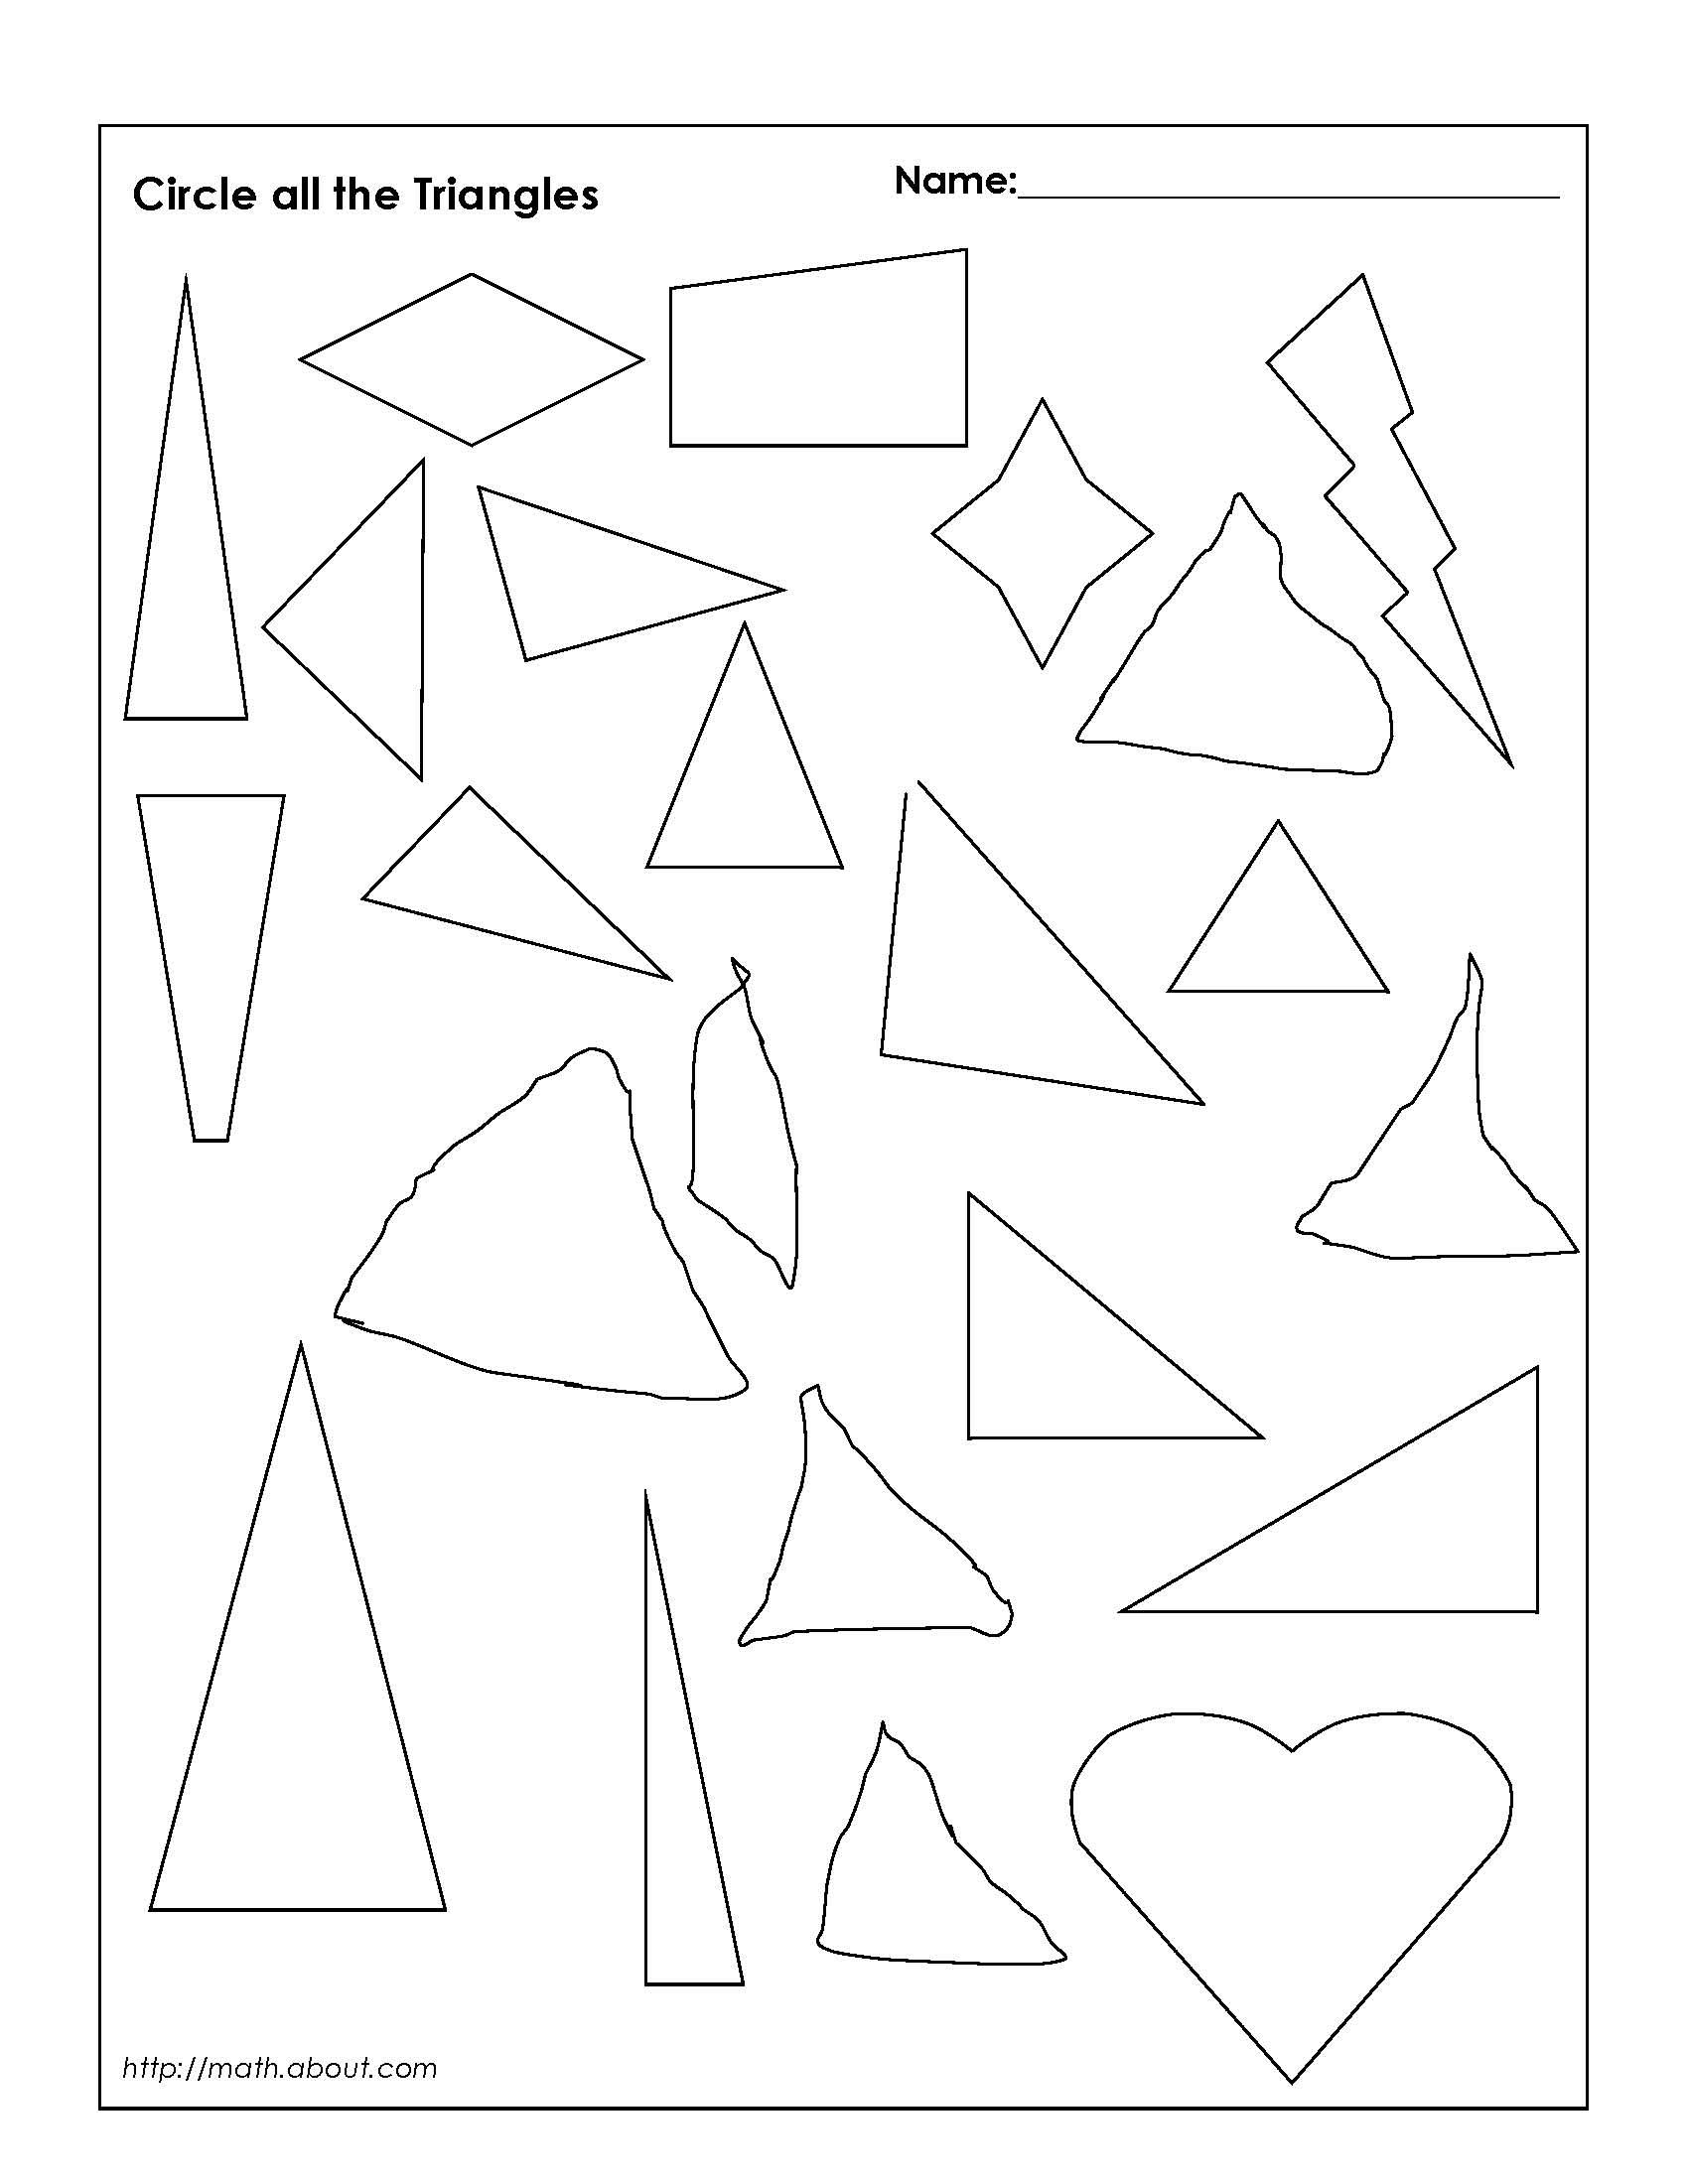 worksheet First Grade Geometry Worksheets 1st grade geometry worksheets for rounding numbers printable students in shapes7 56a602493df78cf7728ade98 2312322